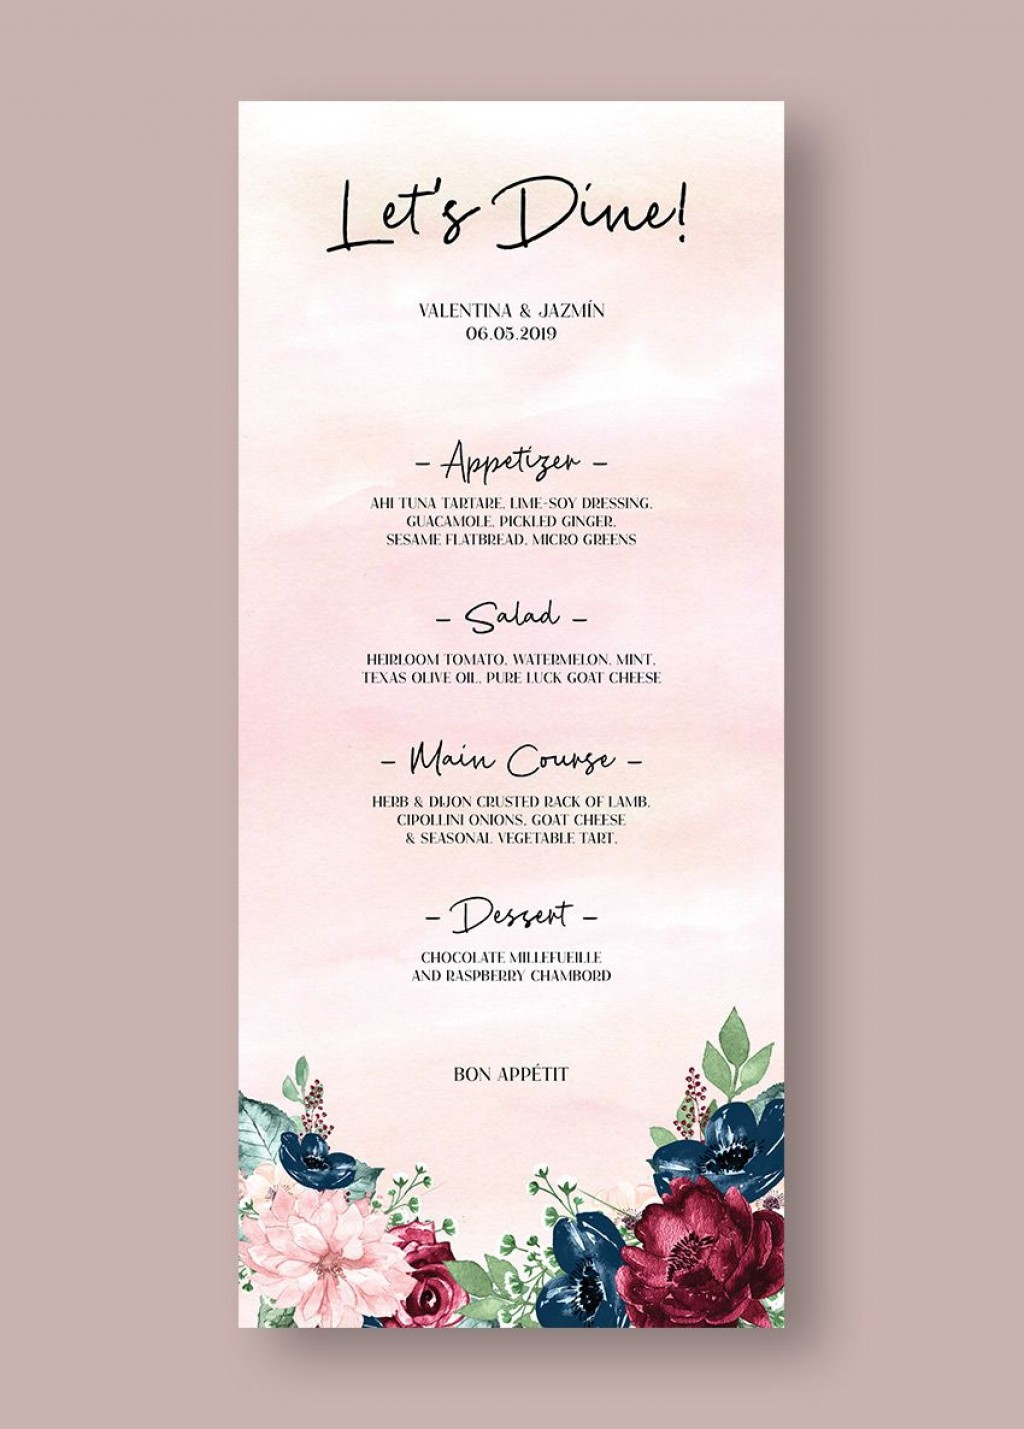 001 Staggering Free Wedding Menu Template To Print High Definition  Printable CardLarge